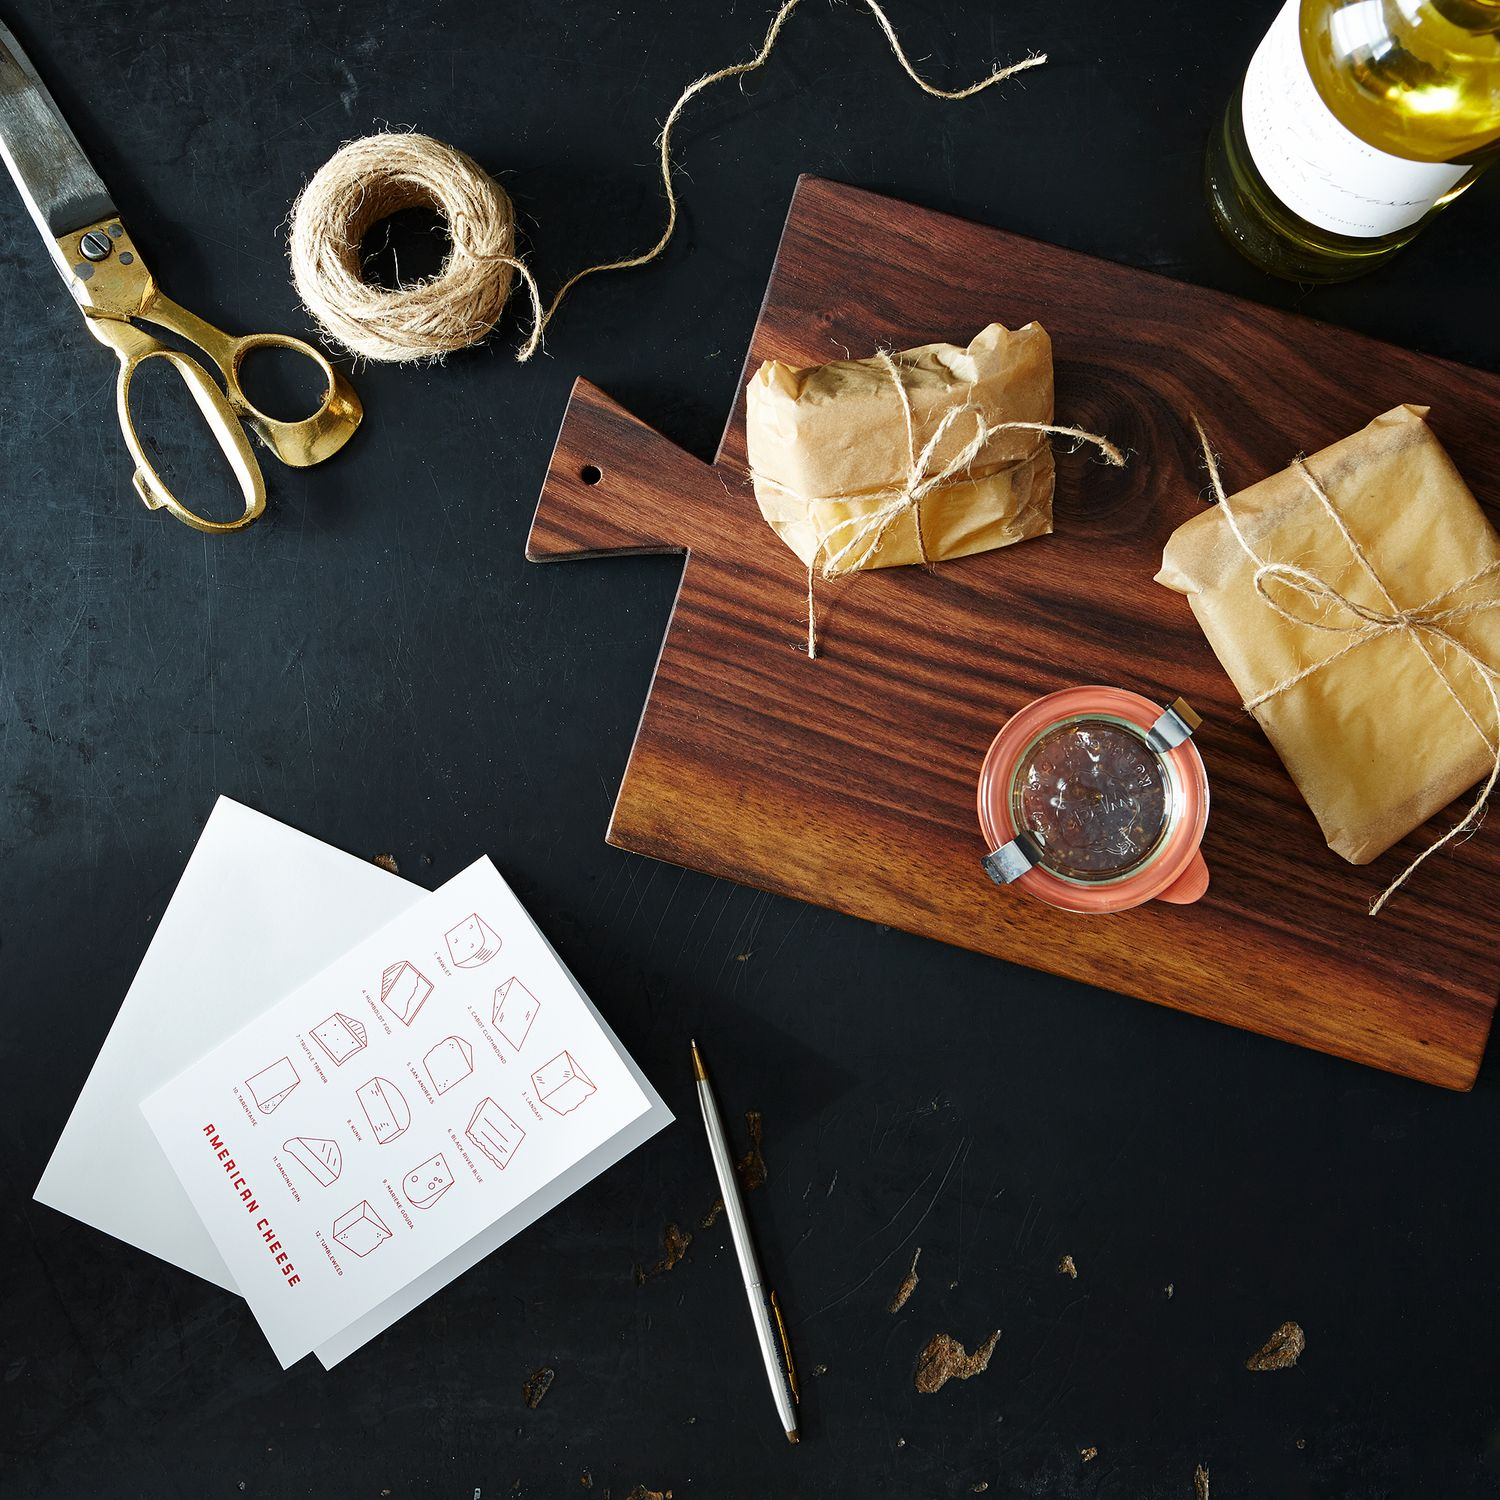 American Cheese Greeting Card (Set of 4) on Food52